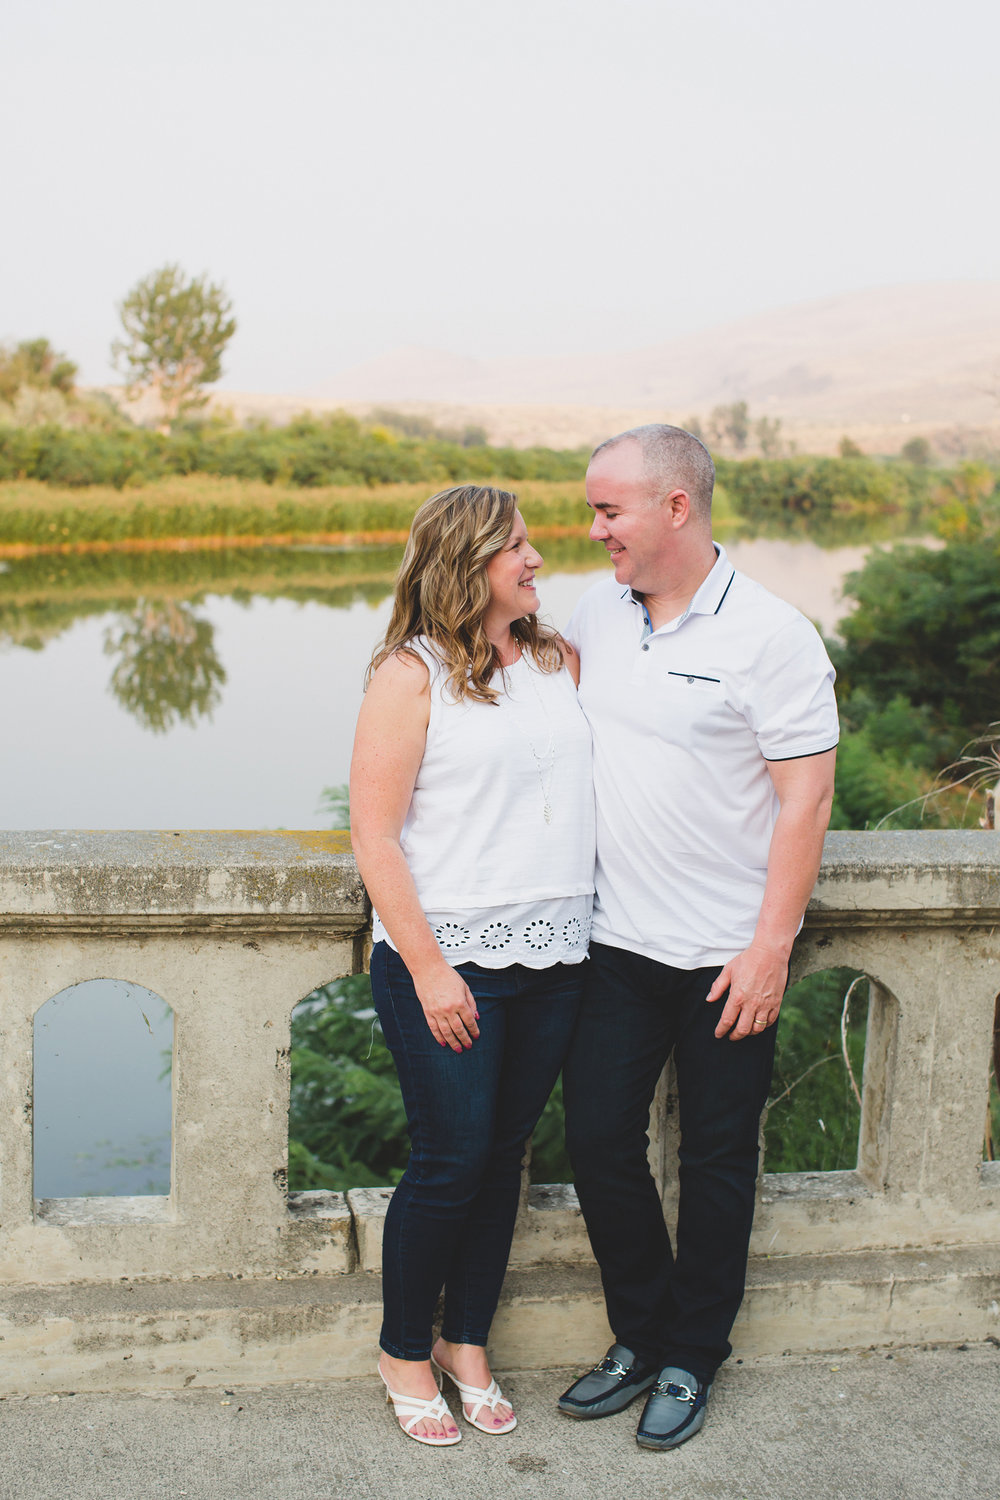 Jordan Edens Photography_tri cities family photographer_lance kenmore_Kenmore family_family photographer_tri cities family photographer_kennewick family photographer_richland family photographer_family moments_6